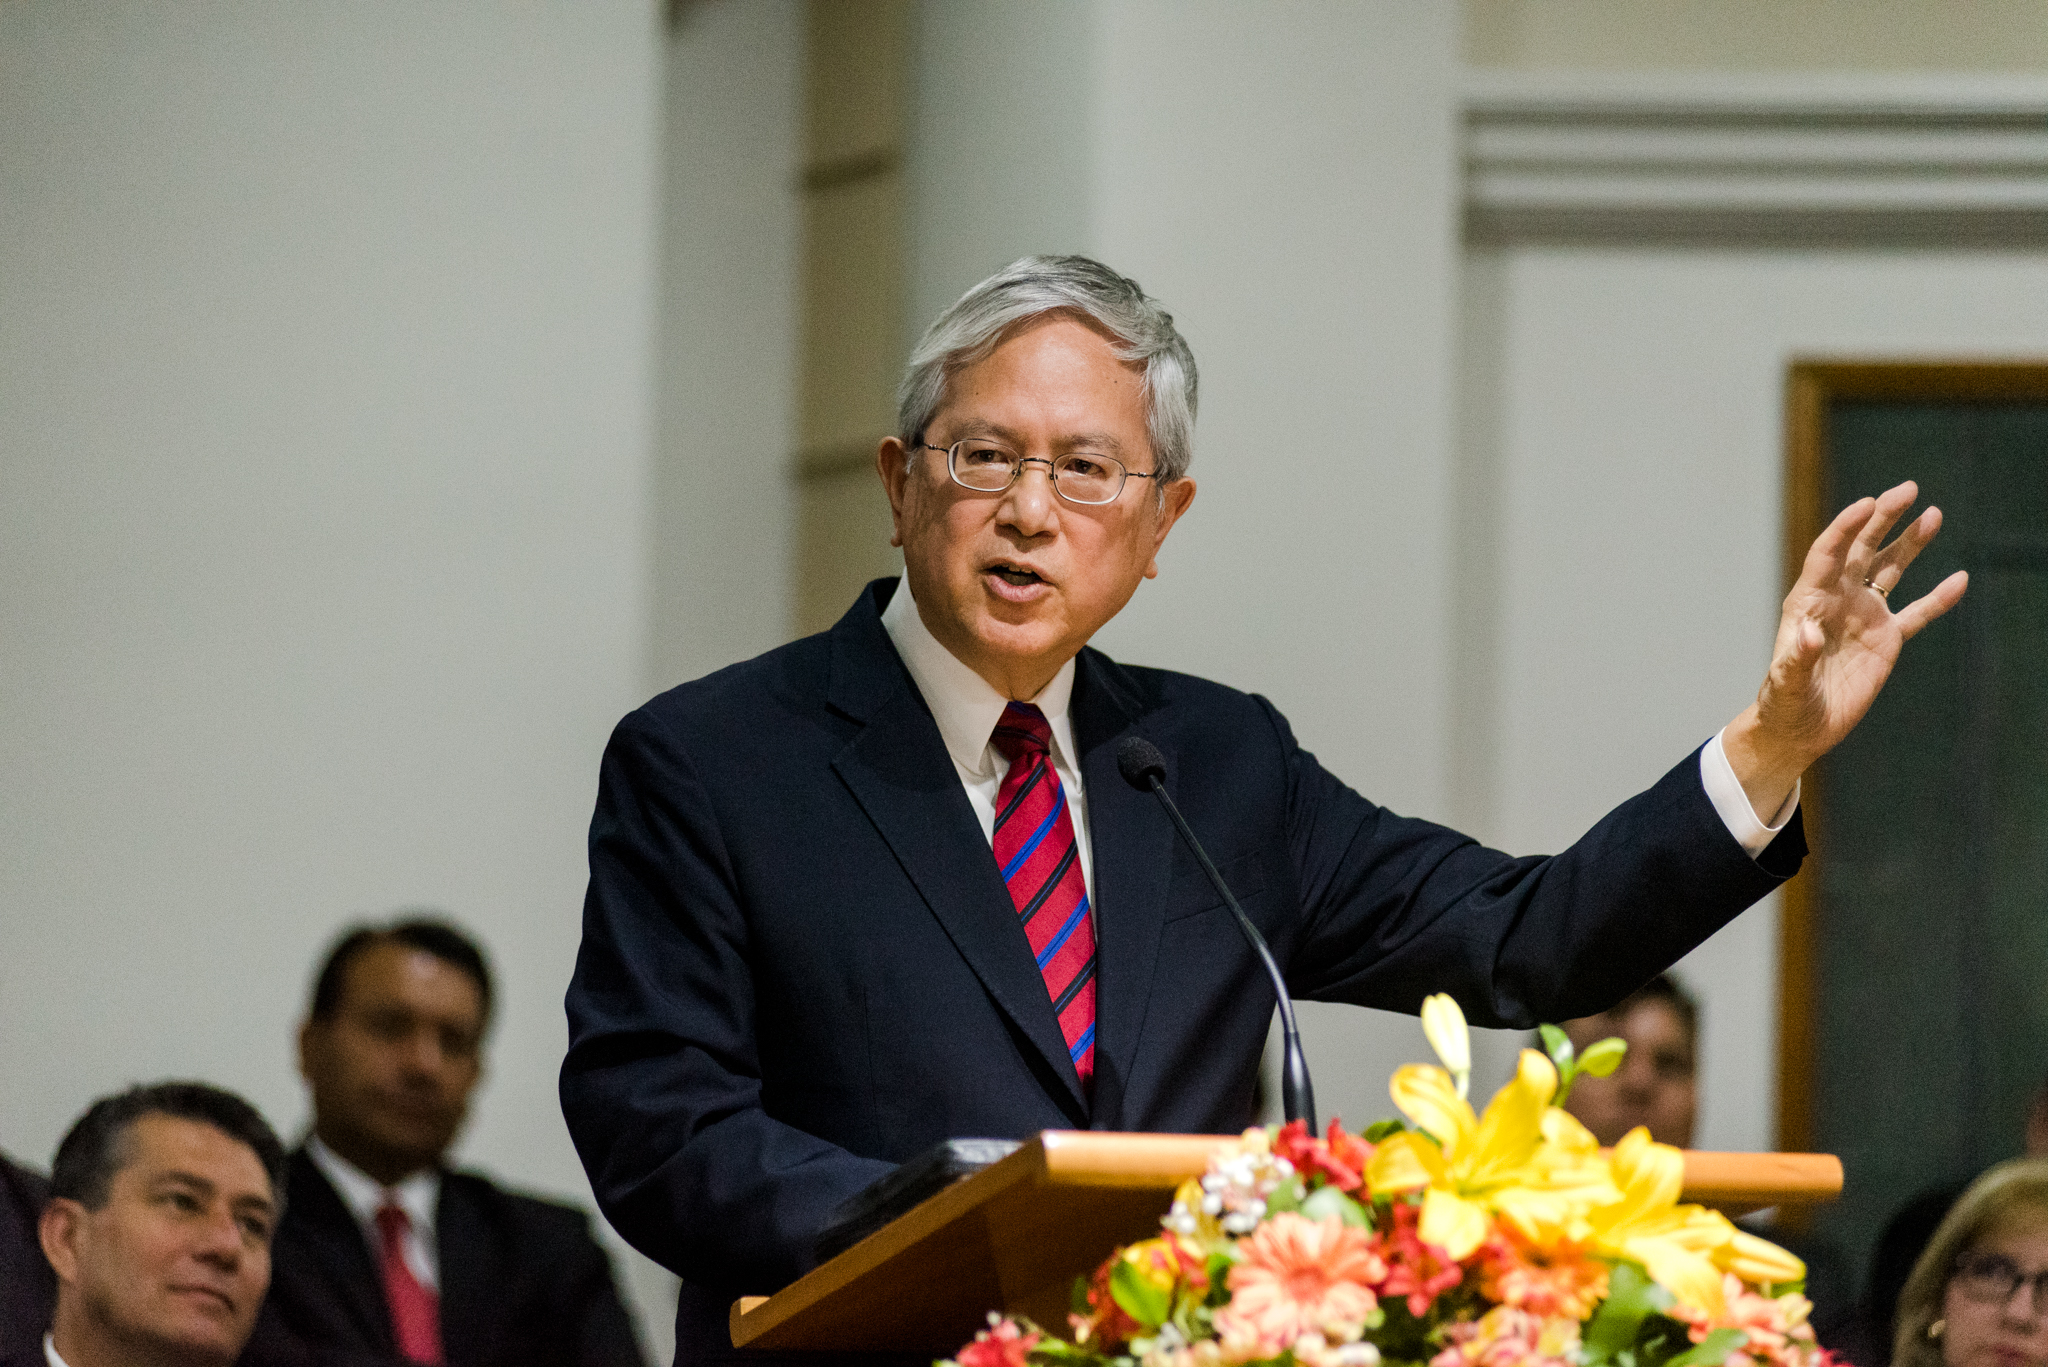 Elder Gerrit W. Gong speaks at a devotional for youth in La Cisterna, Chile, on Nov. 9.